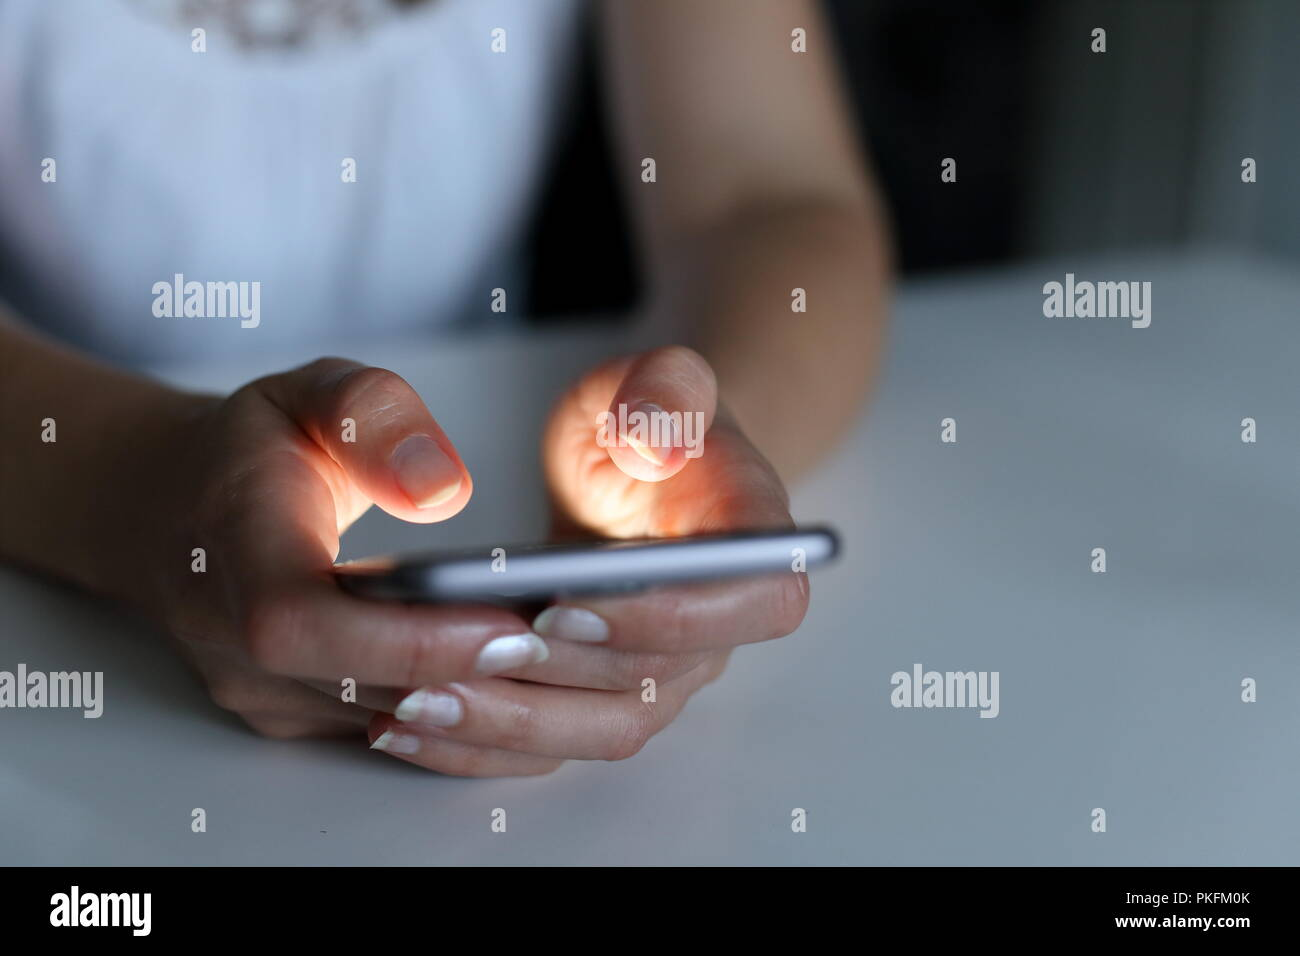 A Woman with smartphone at night - Stock Image